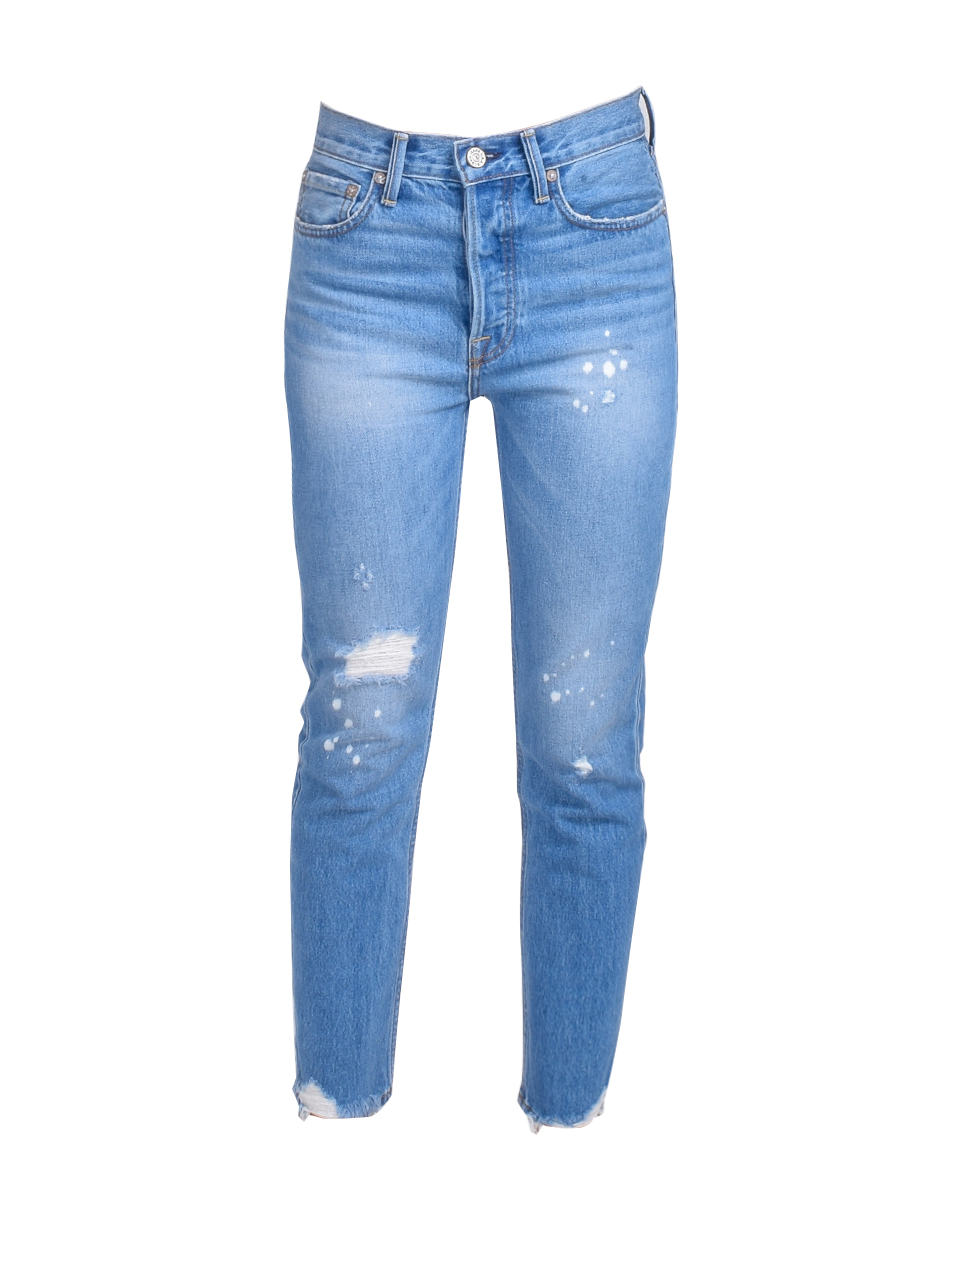 NO END Newport Slim Straight Cropped Jean in Beastie Product Shot